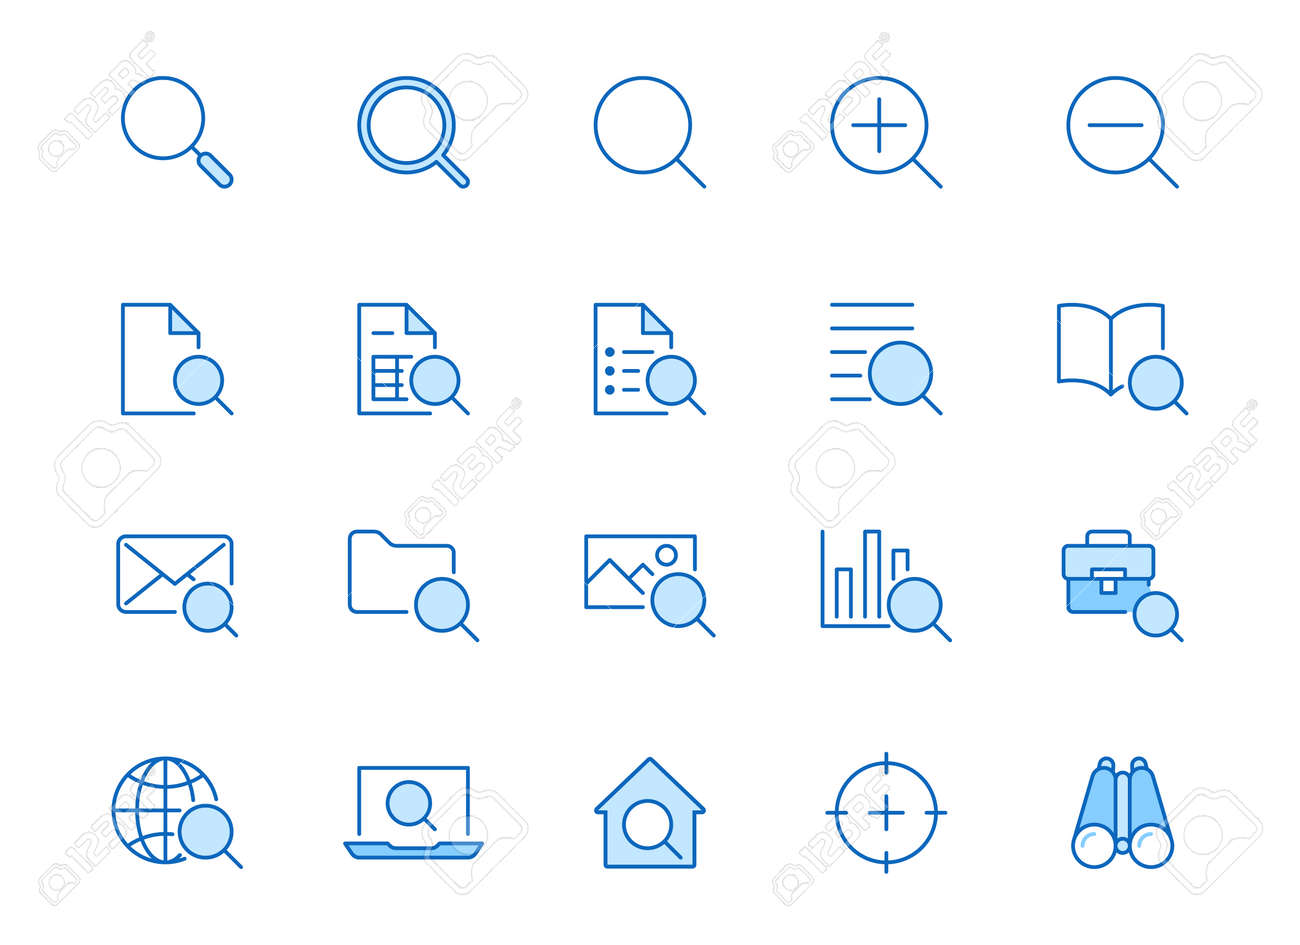 Search line icons set. Zoom, find document, magnify glass symbol, look tool, binoculars minimal vector illustrations. Simple flat outline signs for web interface. Blue color, Editable Stroke. - 158752554